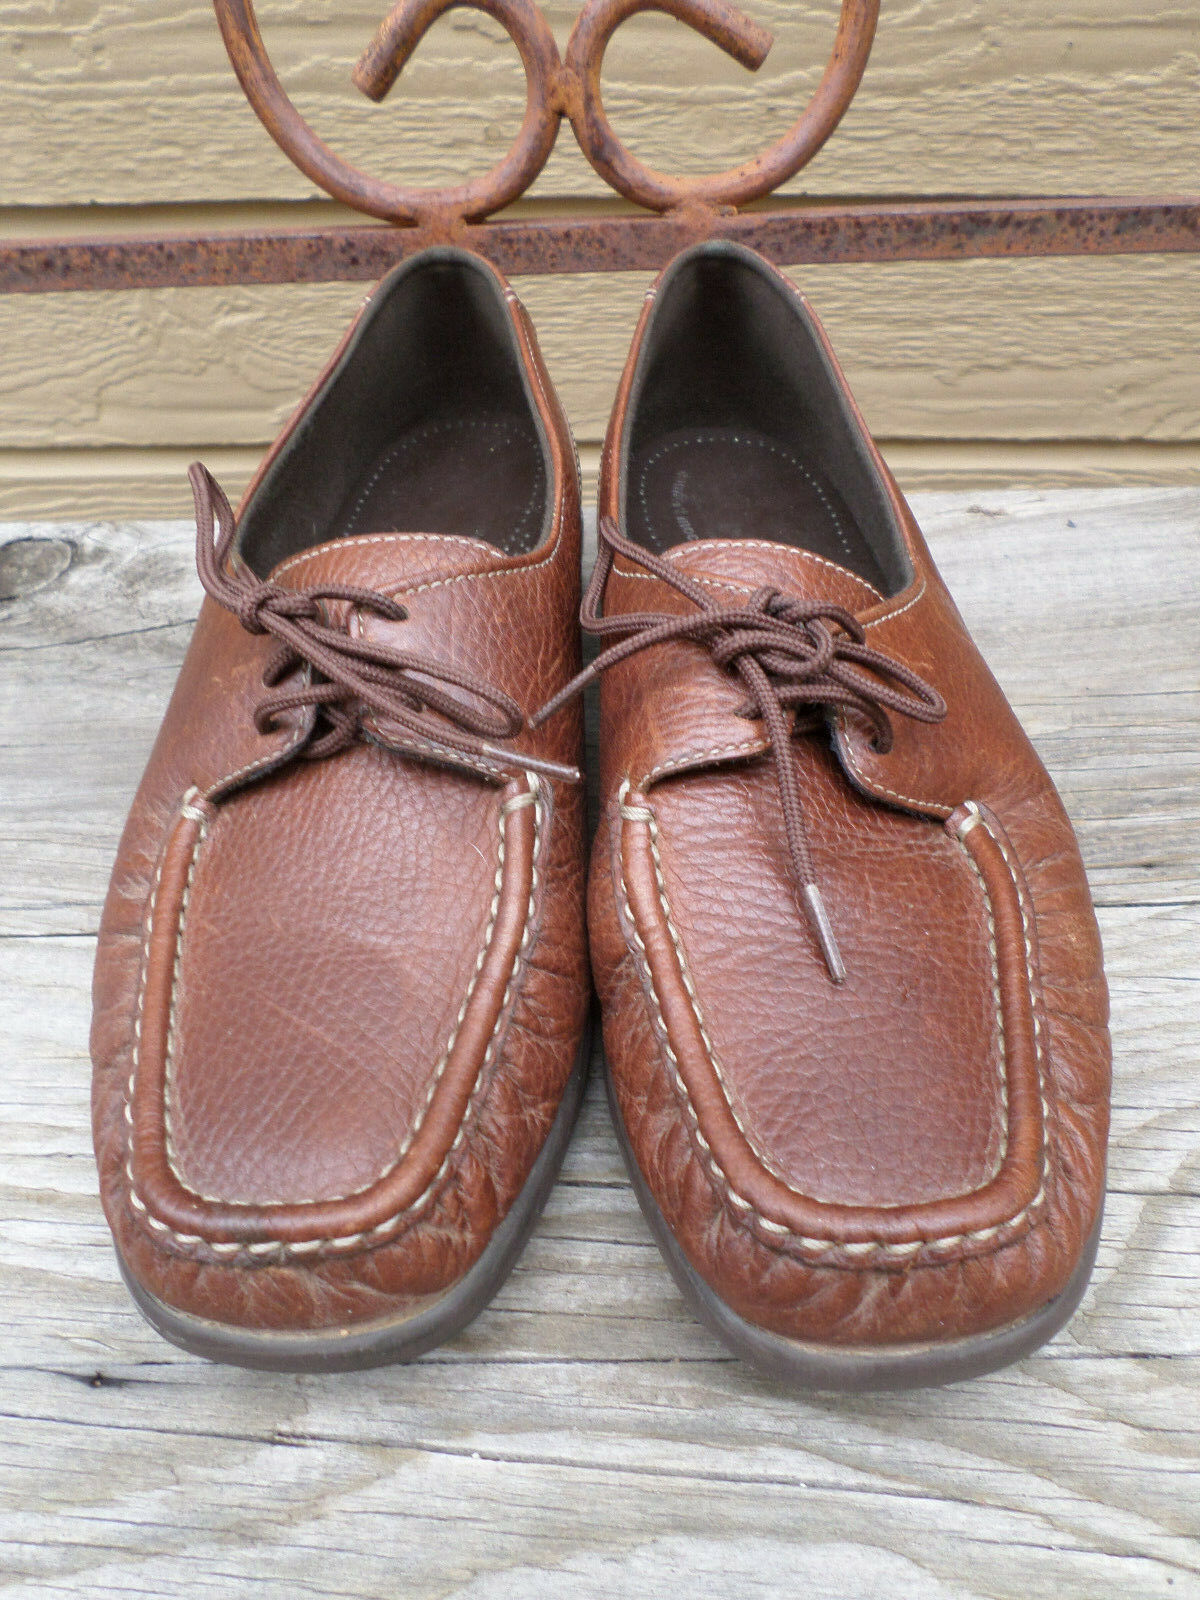 SAS Brown Leather Comfort Moccasin Women's 7.5 W  Made in USA